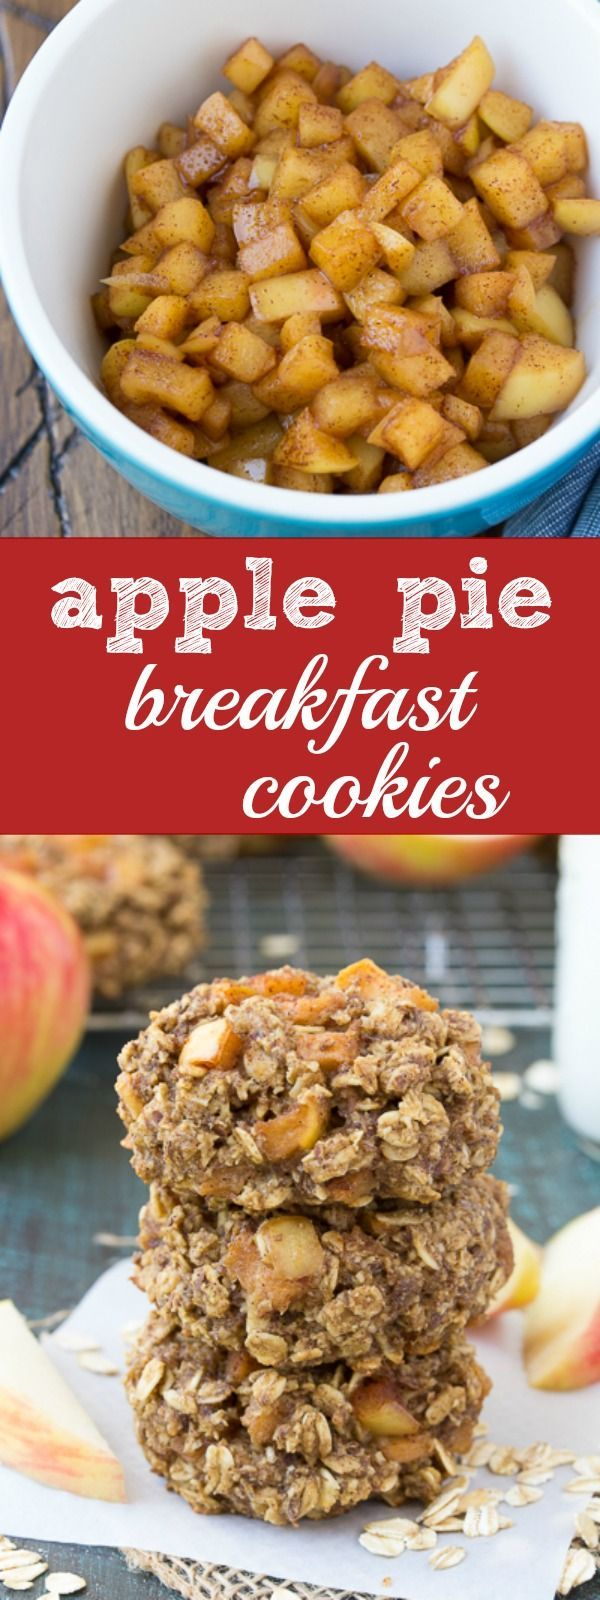 We love these Apple Pie Breakfast Cookies for quick breakfasts and snacks! Make a batch and store them in your freezer for busy days! | http://www.kristineskitchenblog.com